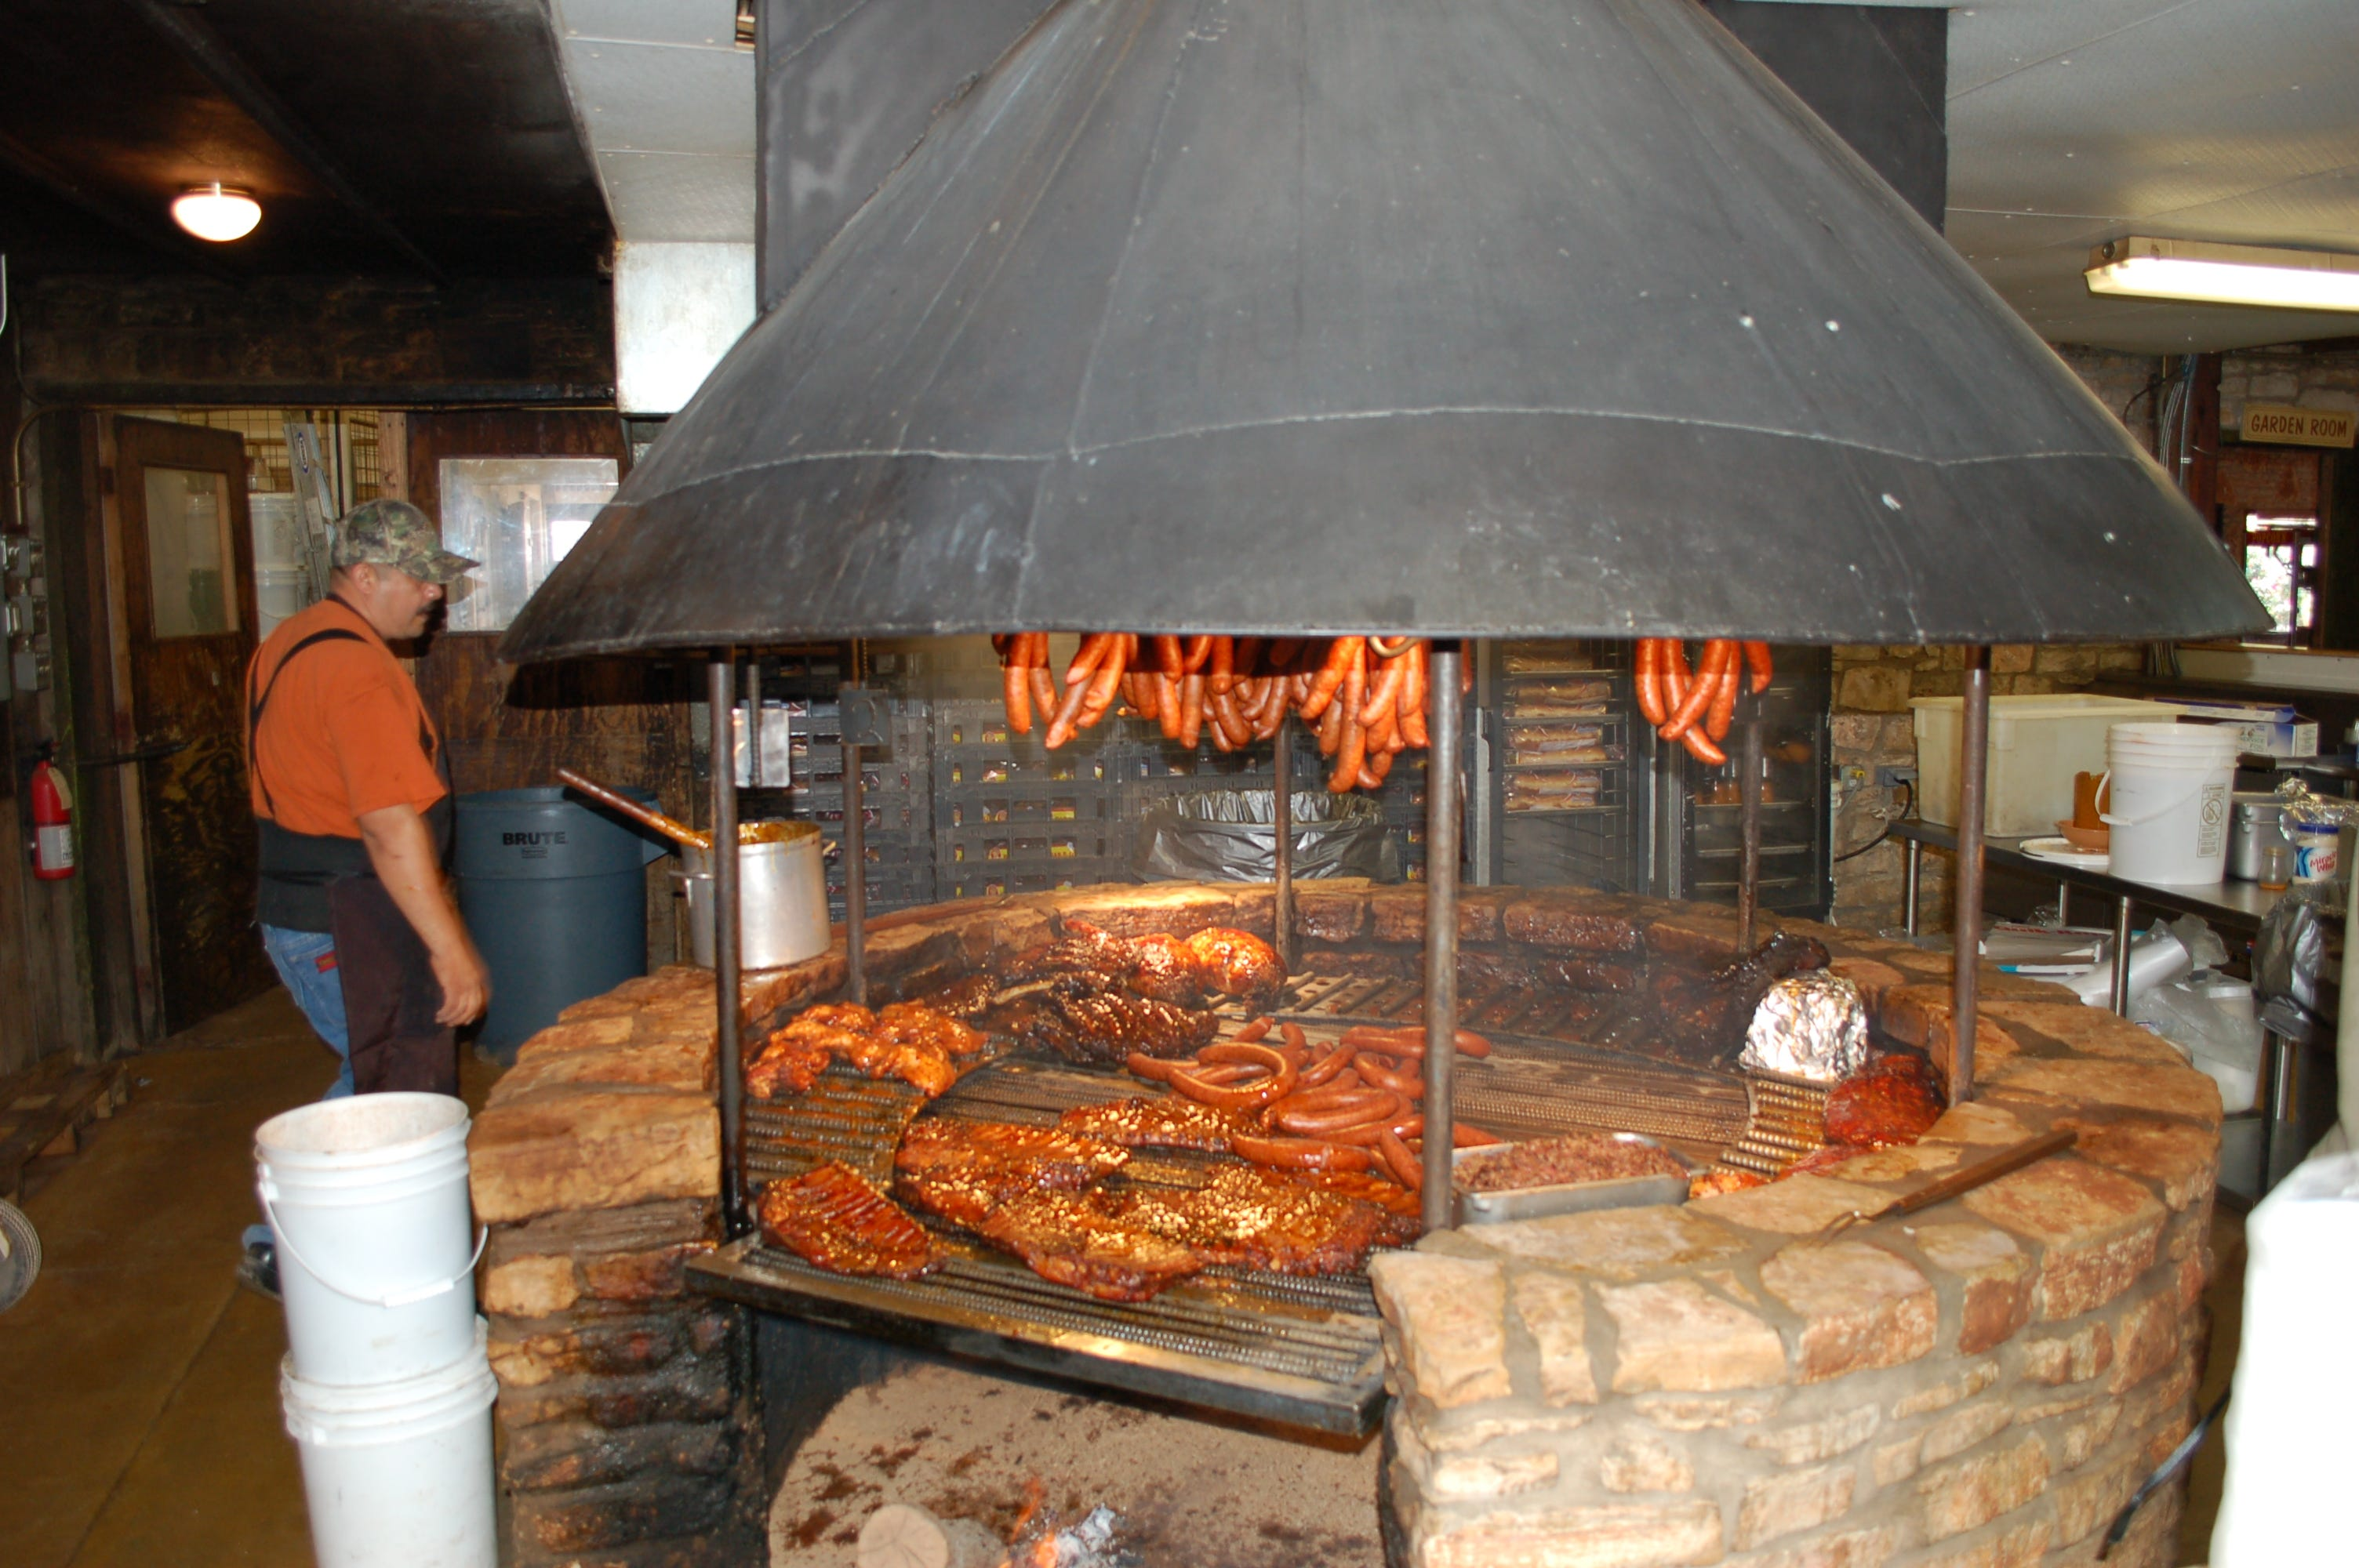 ... Hearth Patio And Barbecue Association Of Canada By America U0027s Best  Grilling Restaurants For Independence Day ...